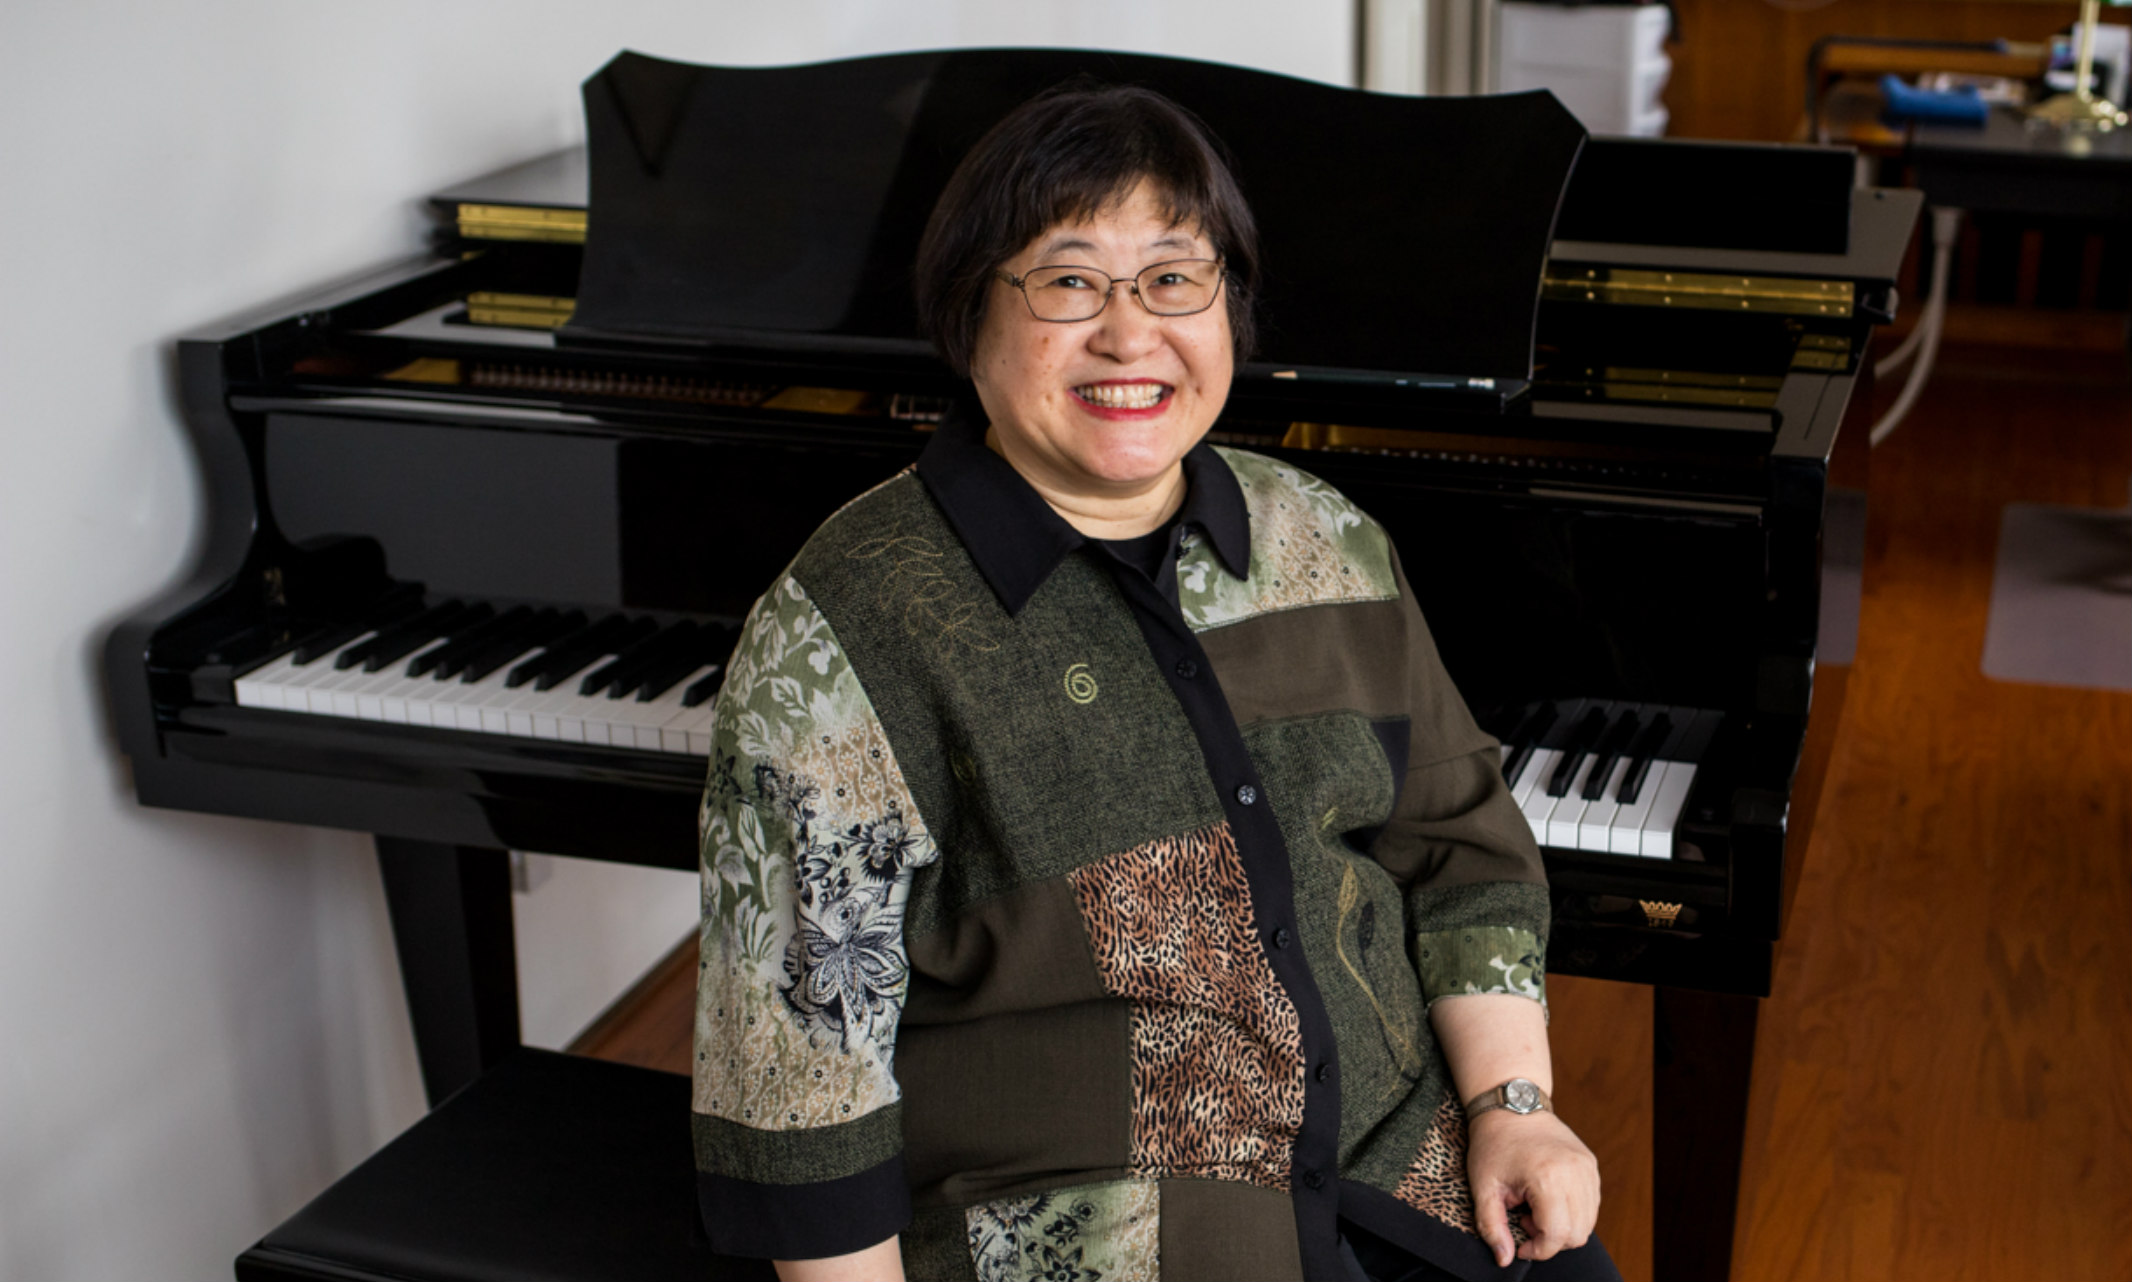 Chen Yi Umkc Composer Named Among Top Arts Group University Of Missouri